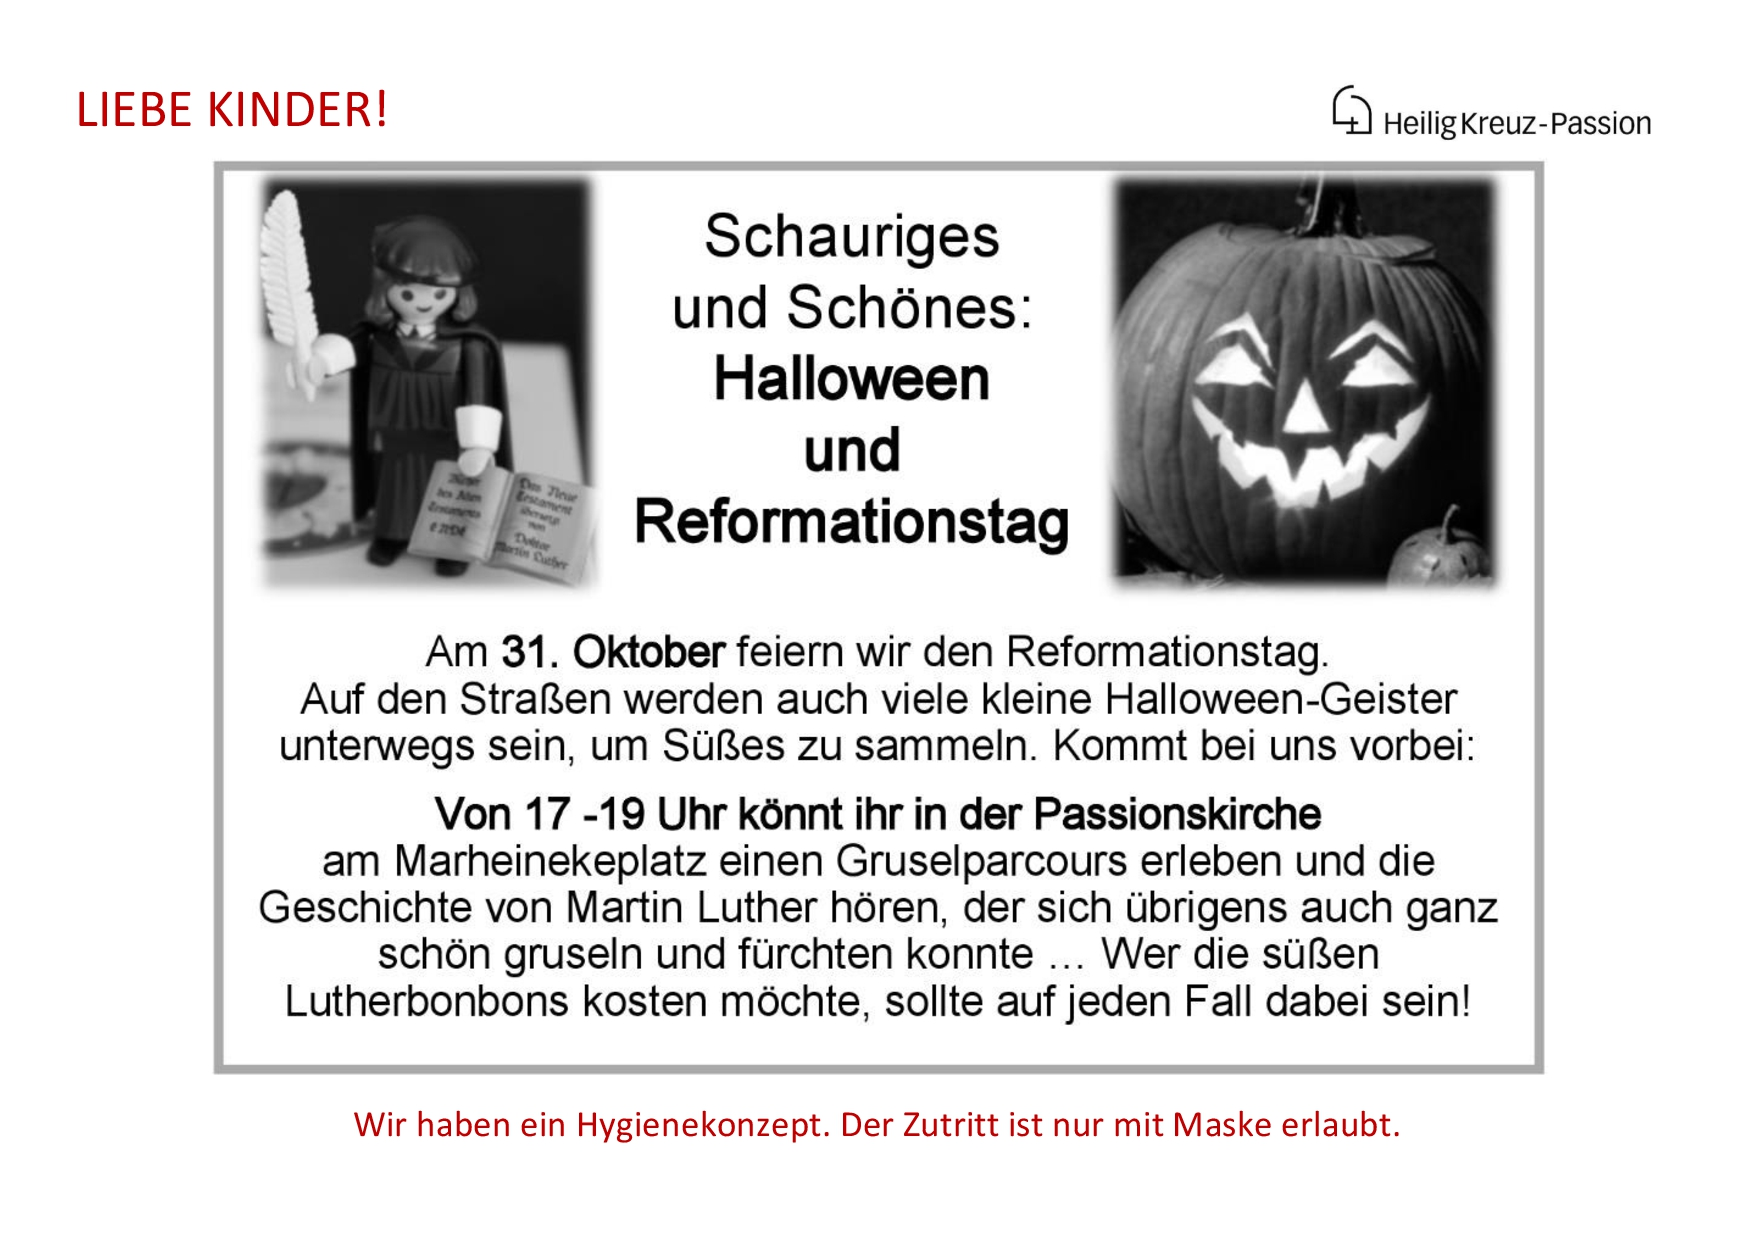 Reformationstag Halloween Aushang 31.10.20